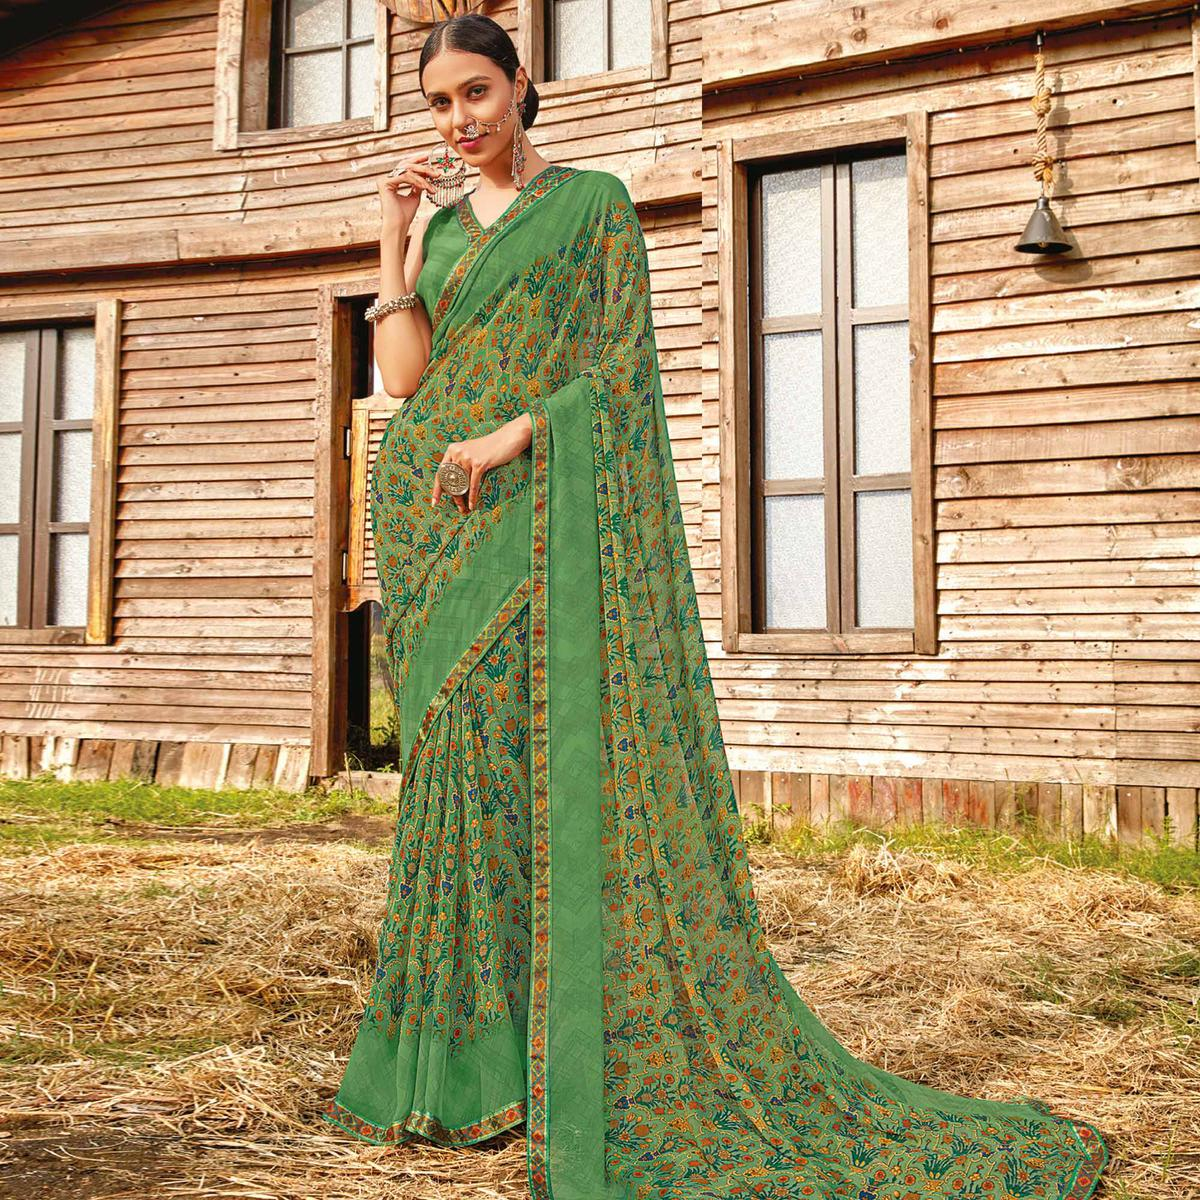 Glorious Dusty Green Coloured Partywear Pure Georgette Floral Printed Saree With Fancy Lace Border